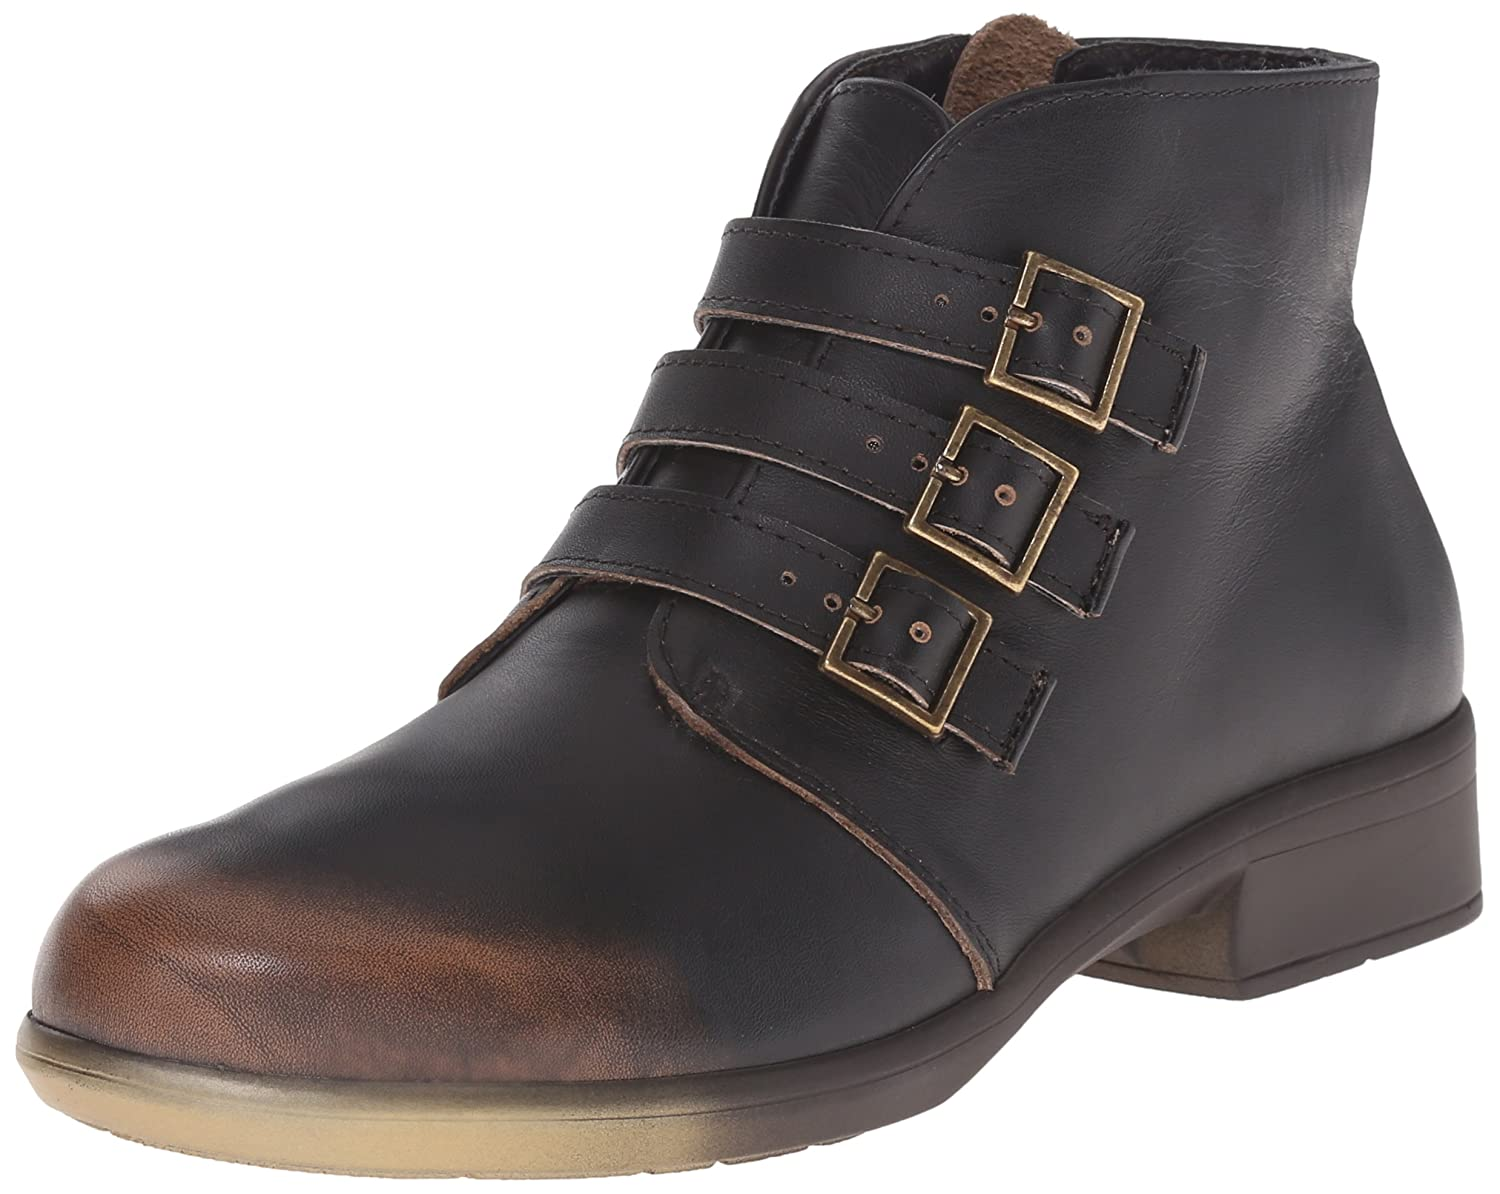 NAOT Women's Calima Boot B00TQA8ZKW 37 EU/6-6.5 M US|Volcanic Brown Leather W/Gold & Brown Sole